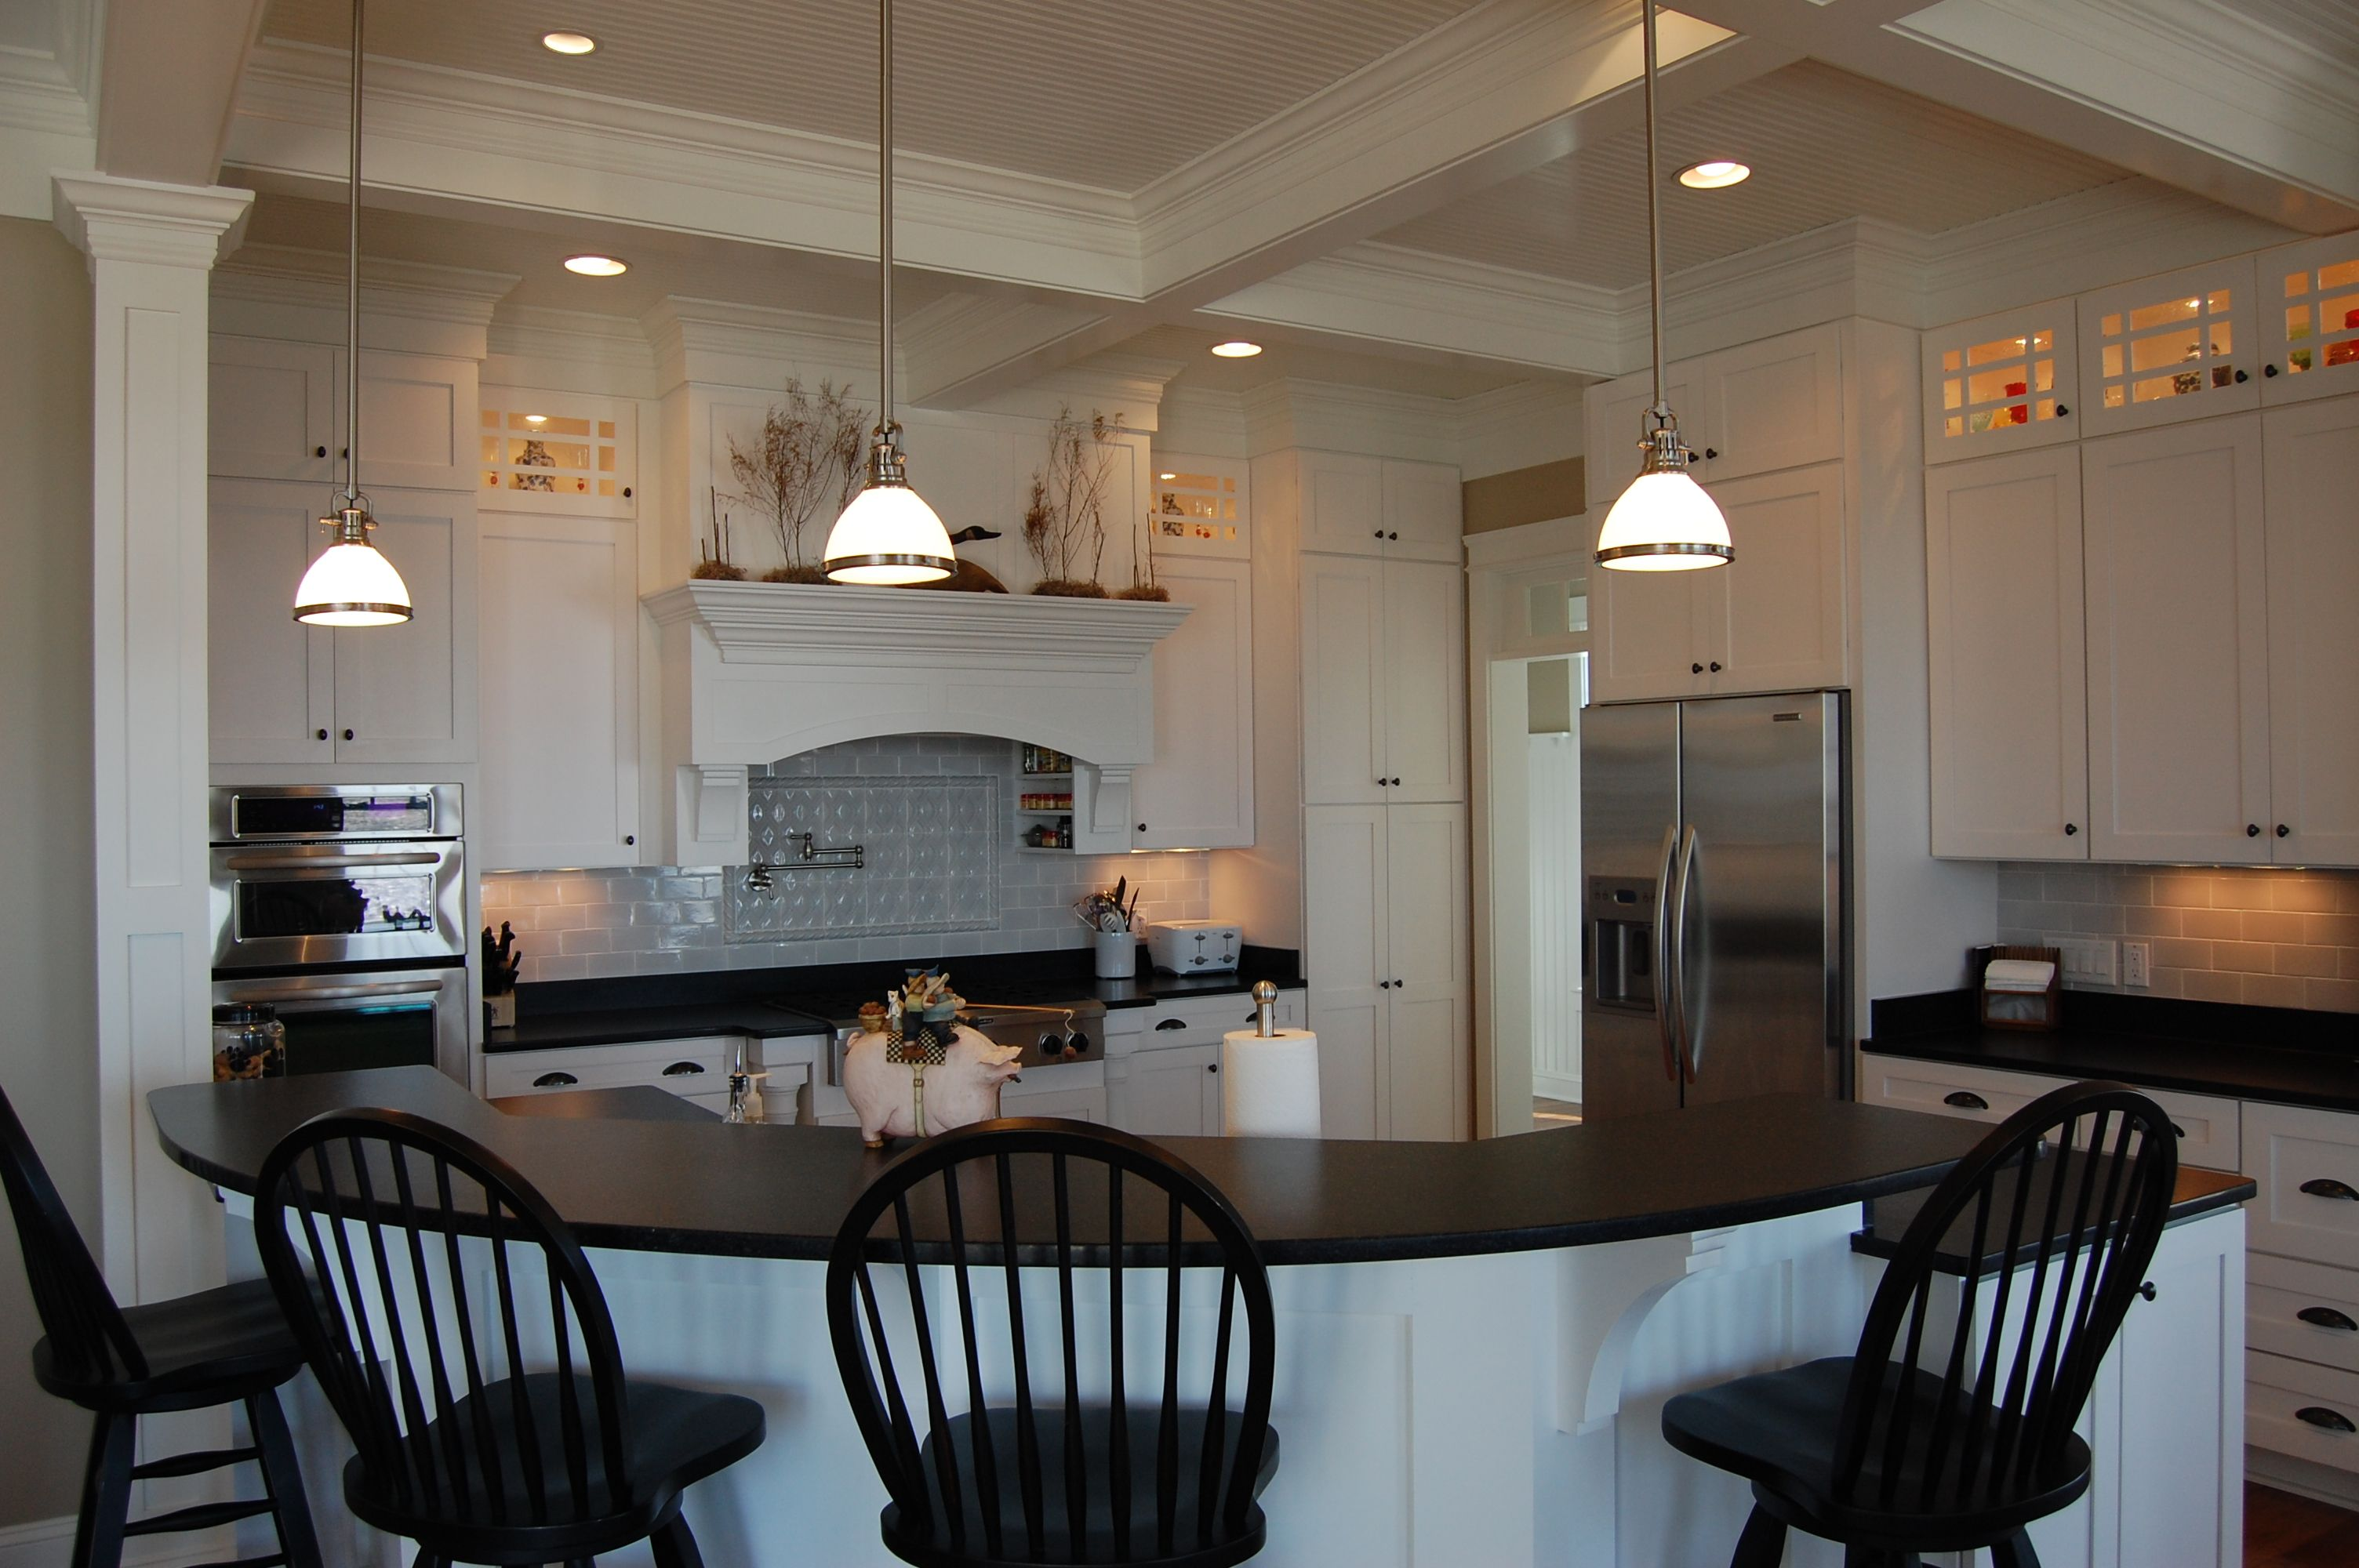 Love The Shape And The Island Not The Color Scheme And I Want The Uneven Top Cabinets That Don T Touch The Ceiling Home Decor House Design Home